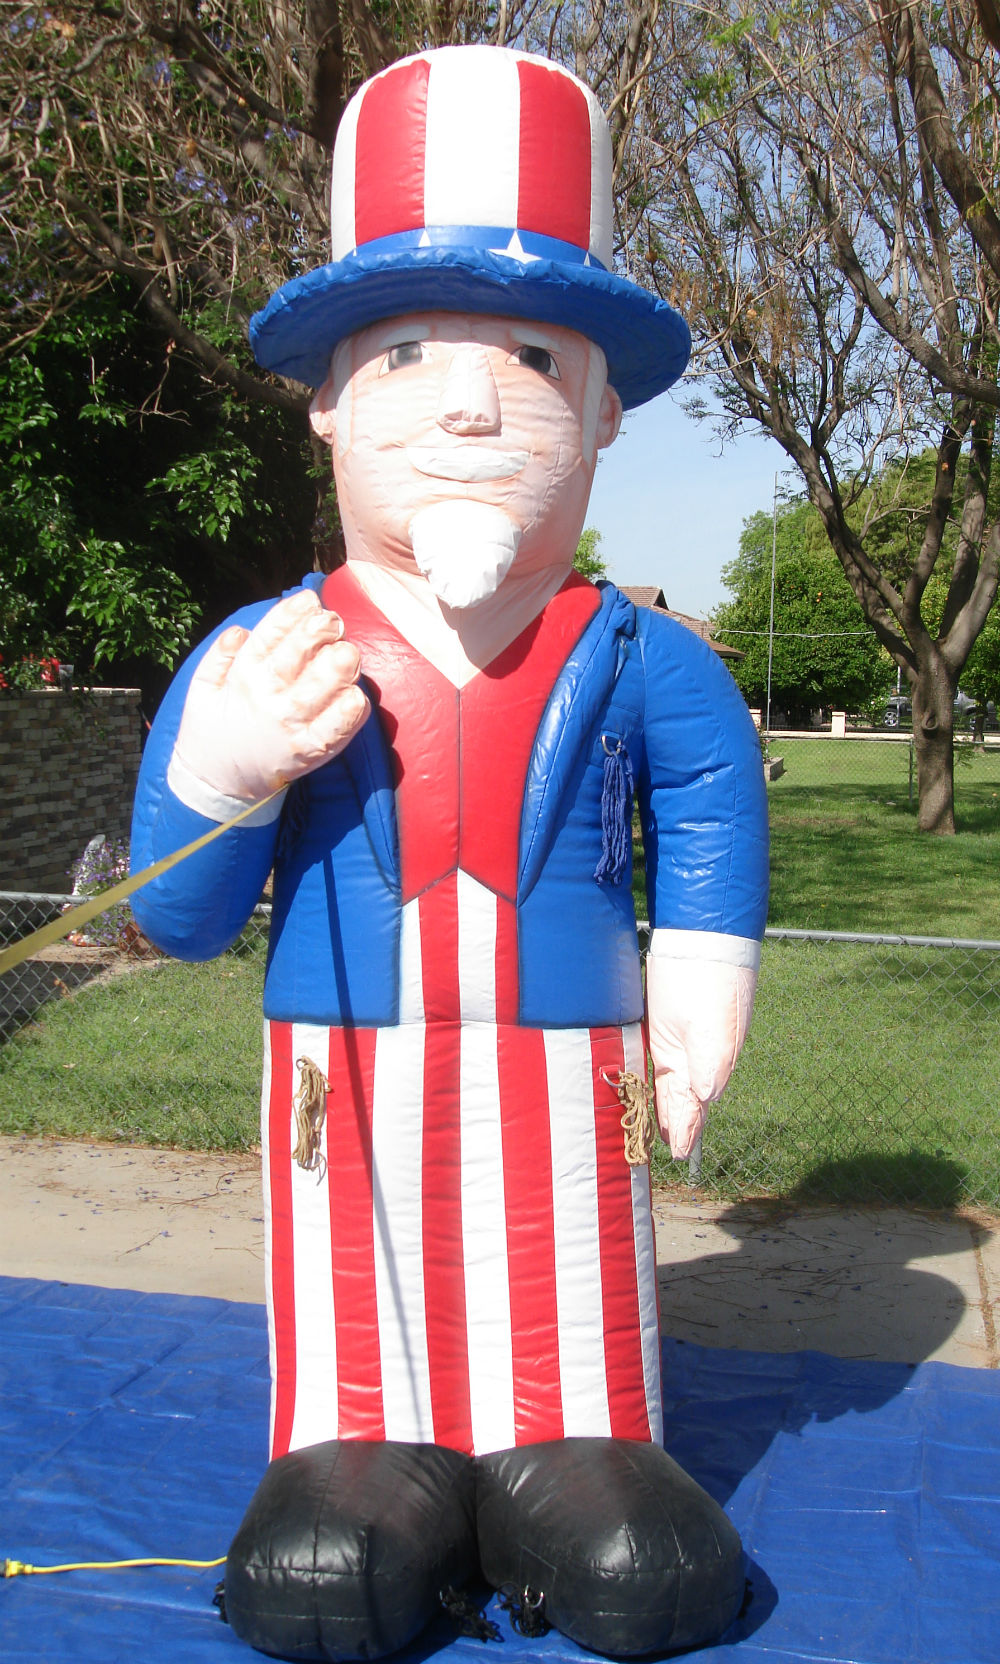 Uncle Sam advertising inflatable